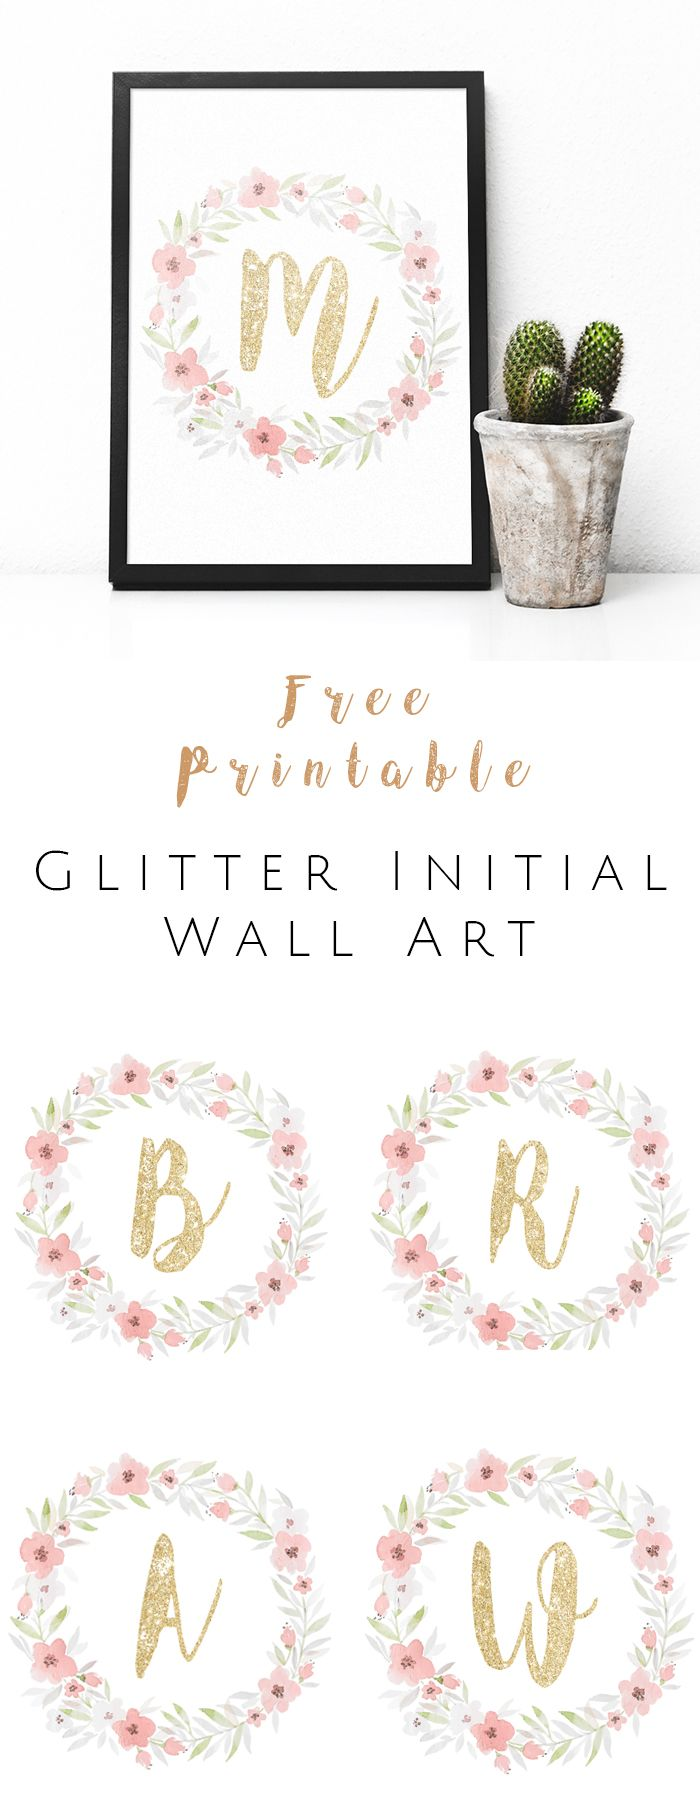 FREE Printable Glitter Initial Wall Art - Watercolor and gold